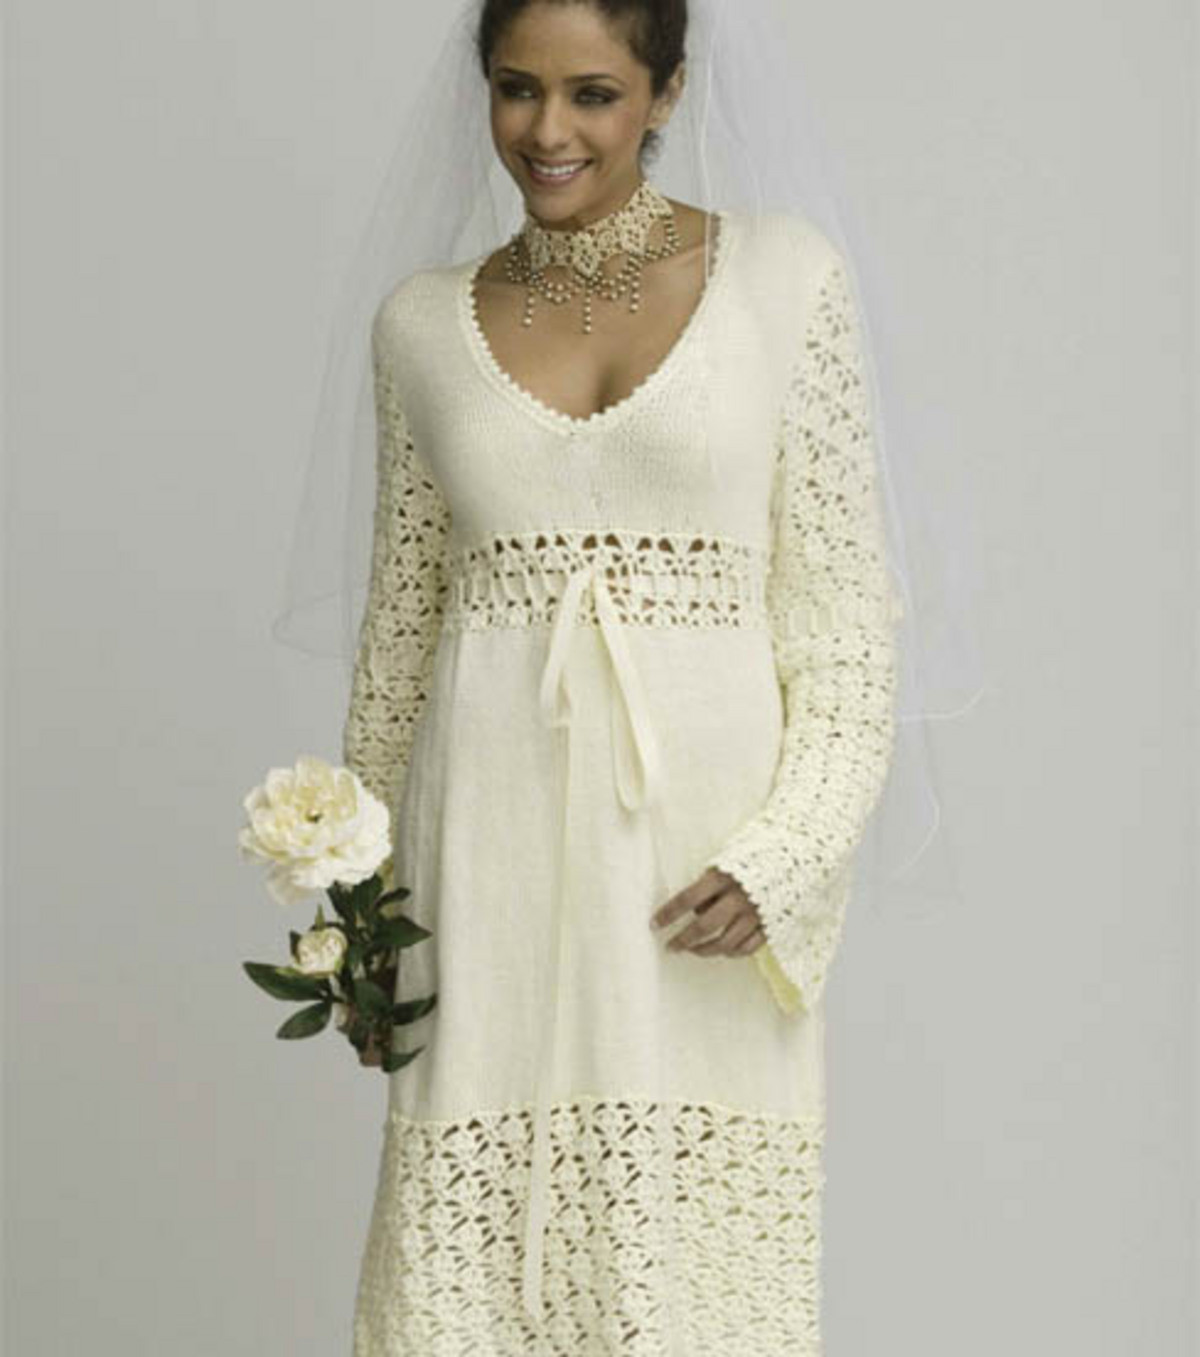 Luxury Crochet Wedding Dress Patterns and Wedding Accessories to Bridal Dress Patterns Of Delightful 43 Pictures Bridal Dress Patterns